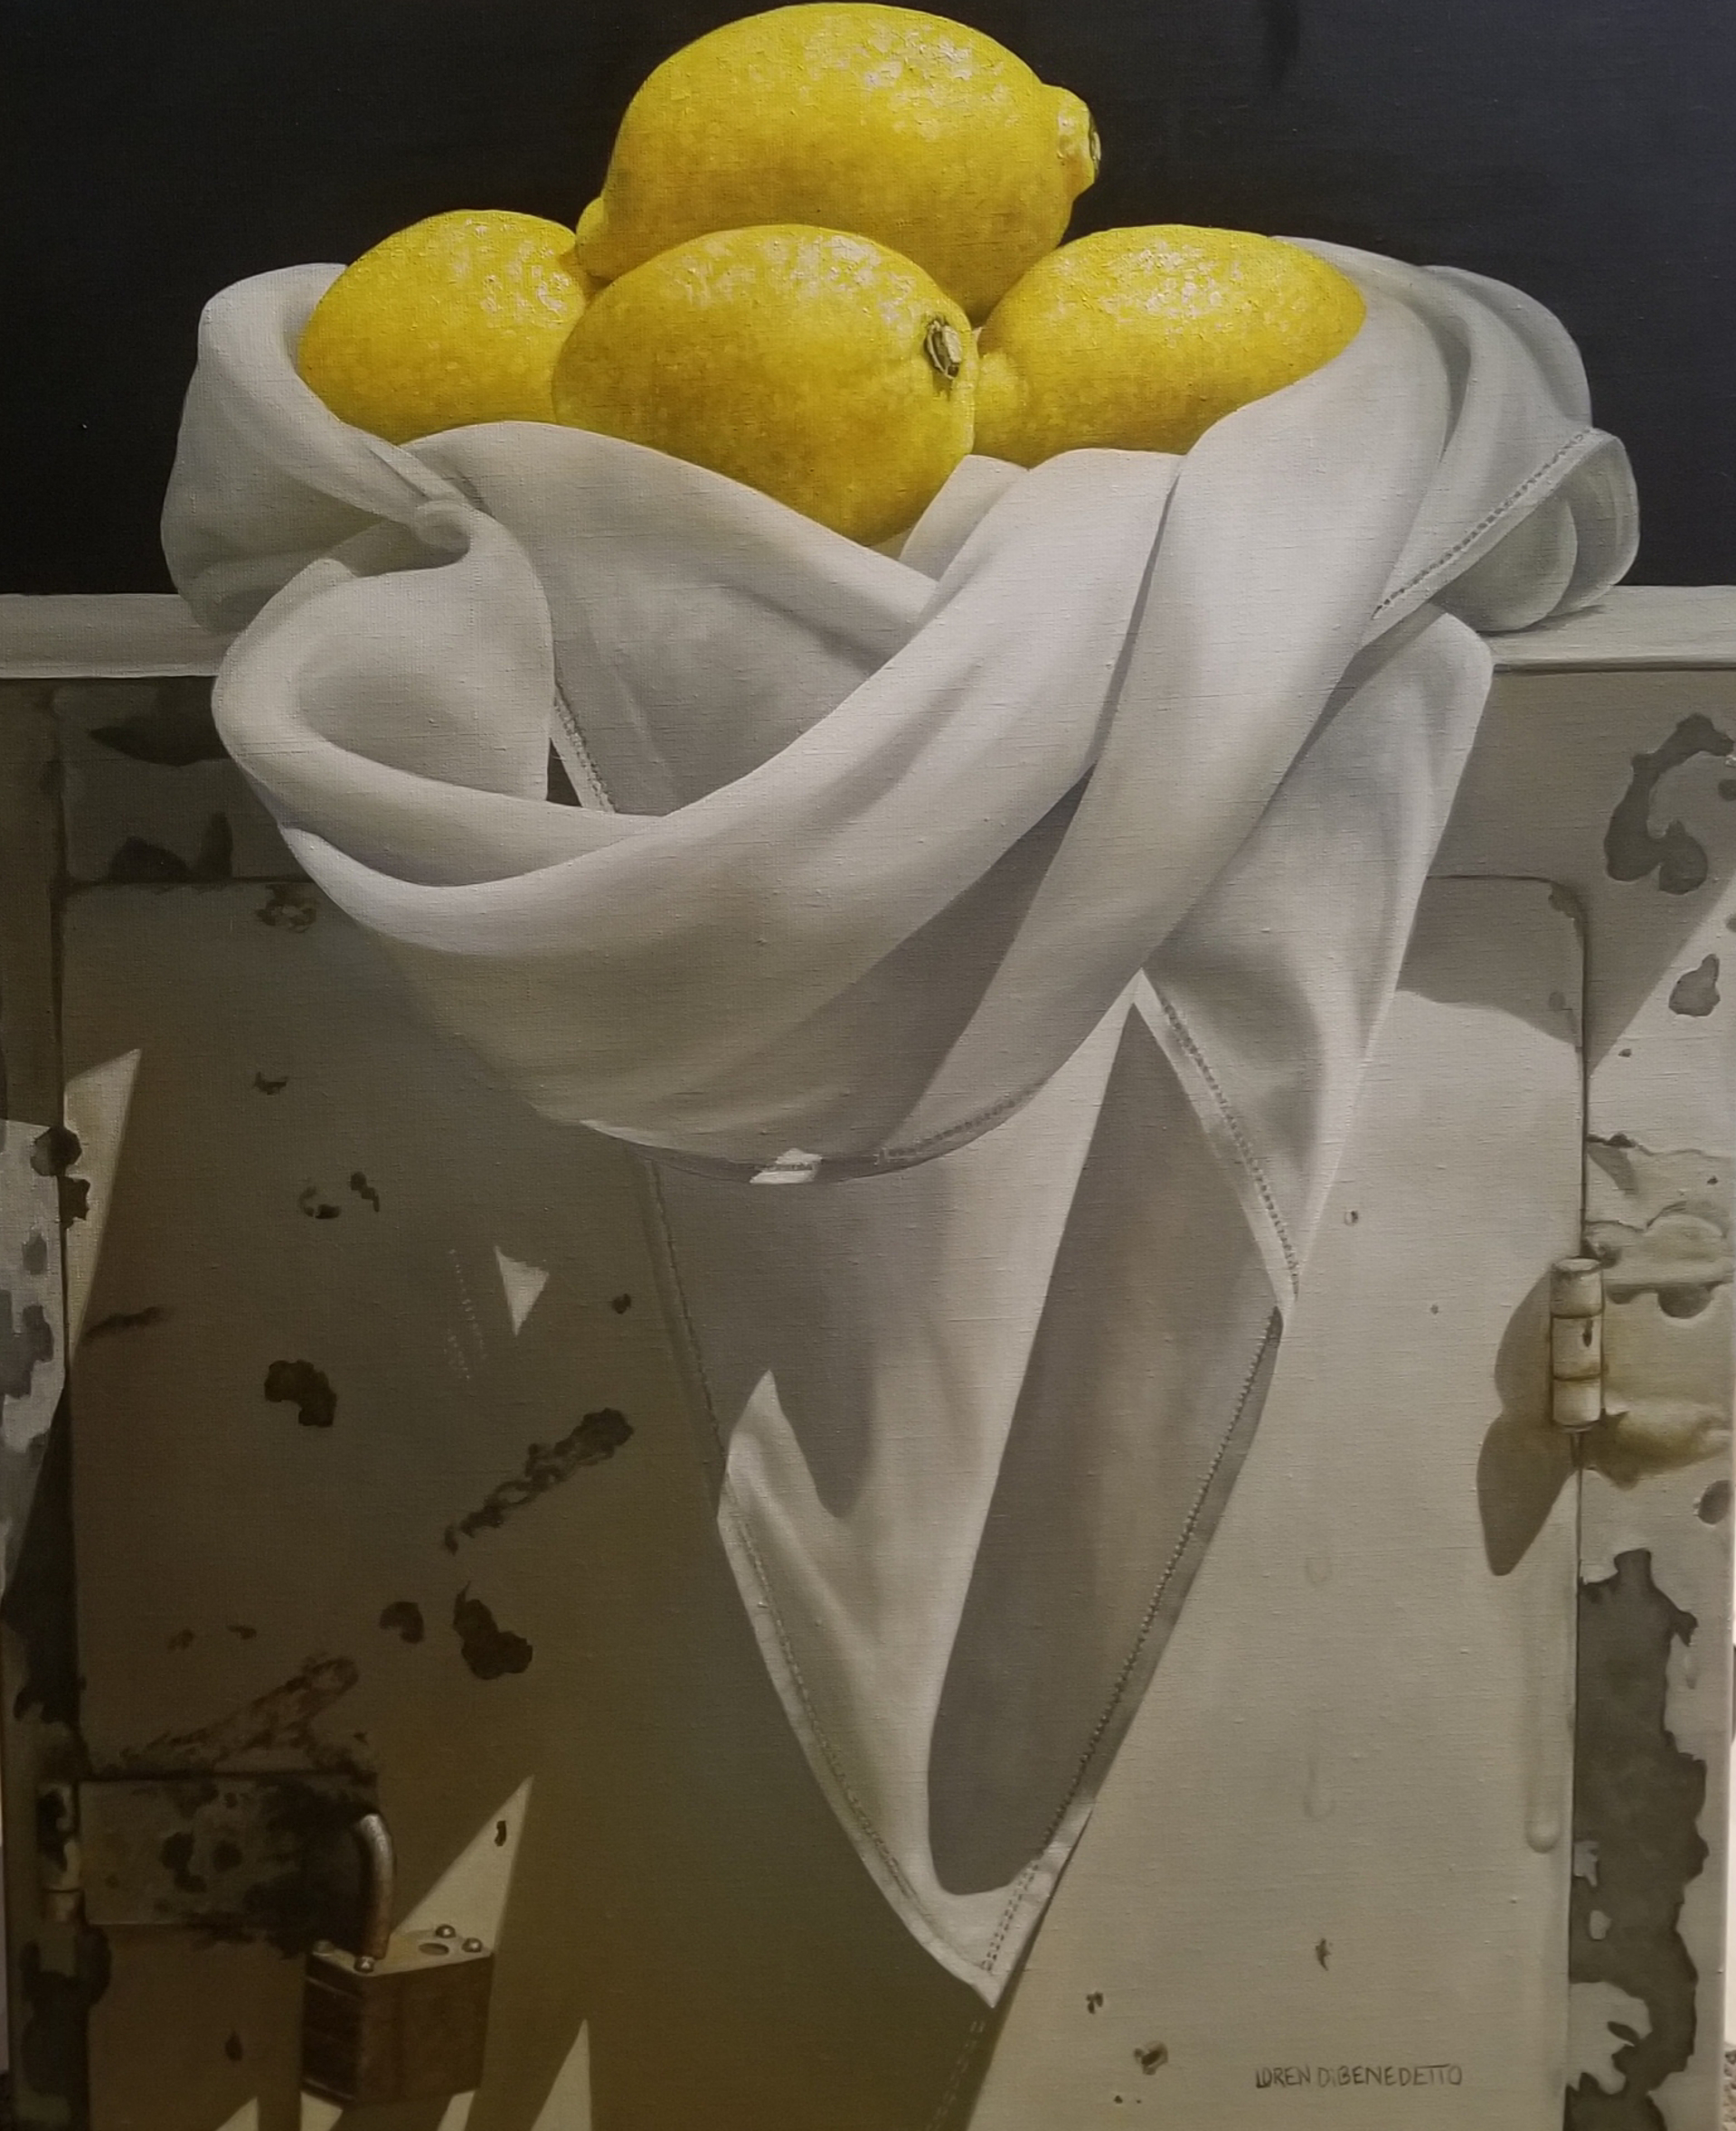 Lemons in Cloth by Loren DiBenedetto, OPA